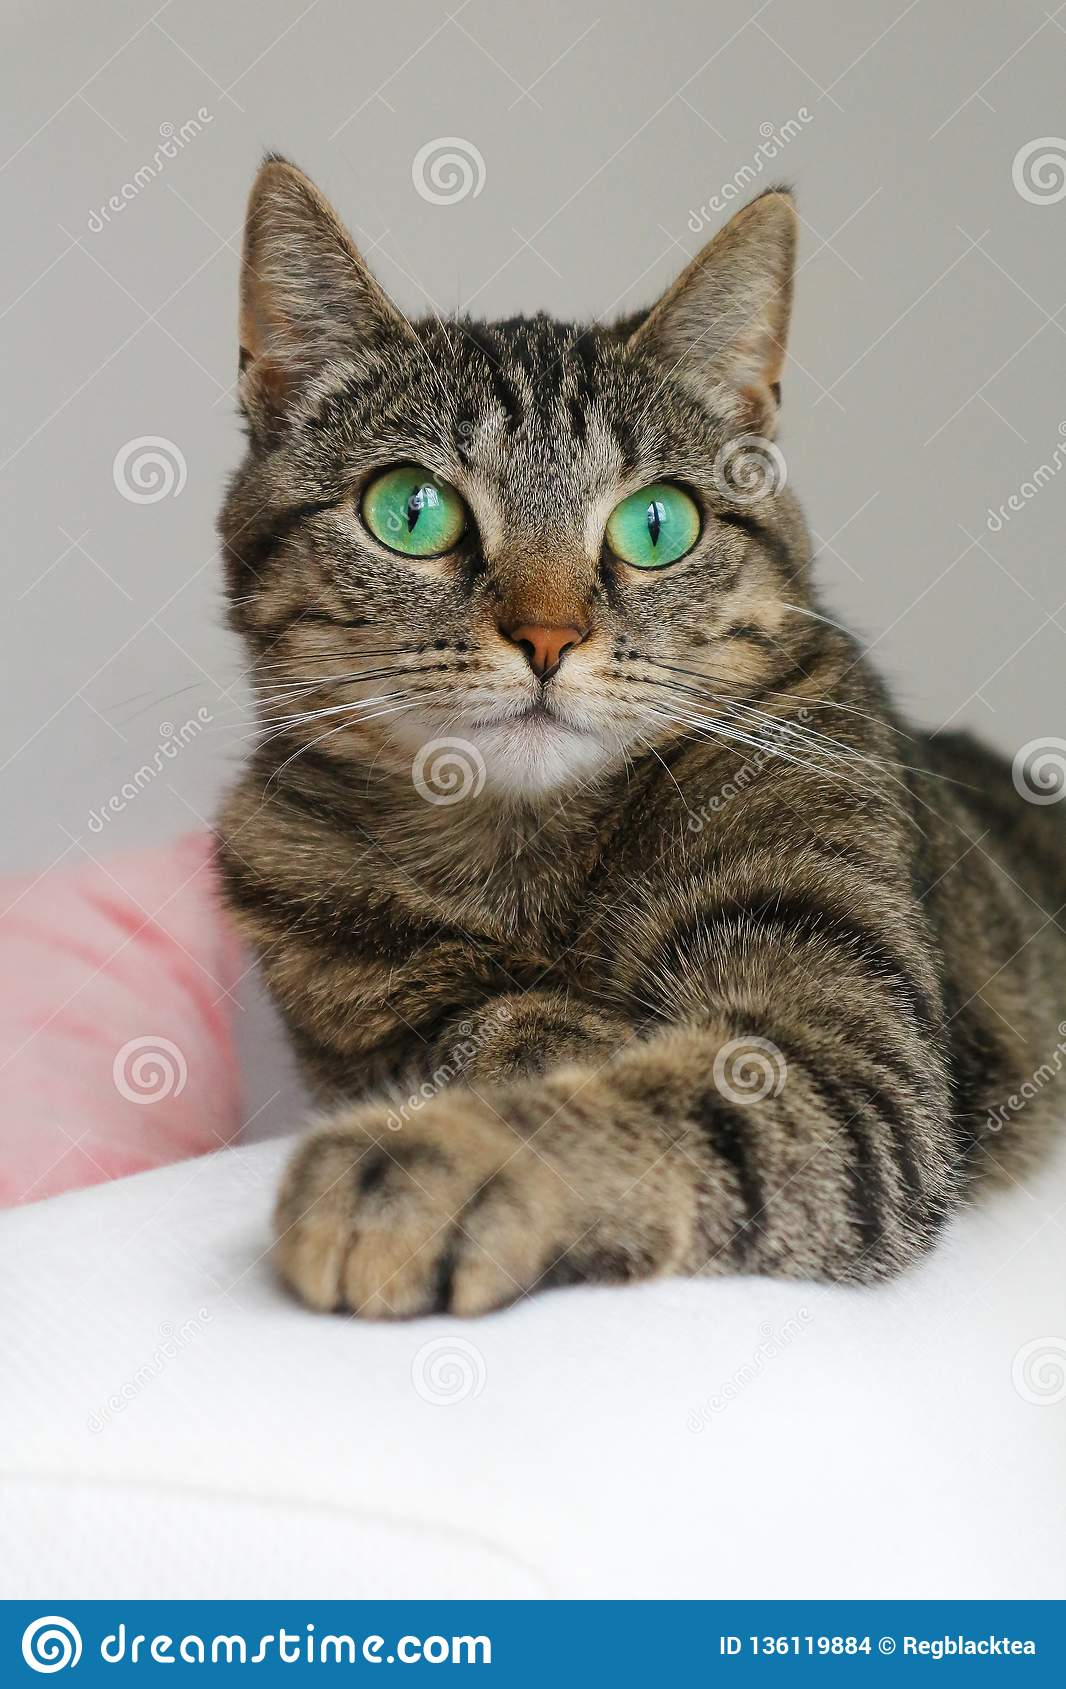 Cute tabby cat with green eyes lies on white couch.